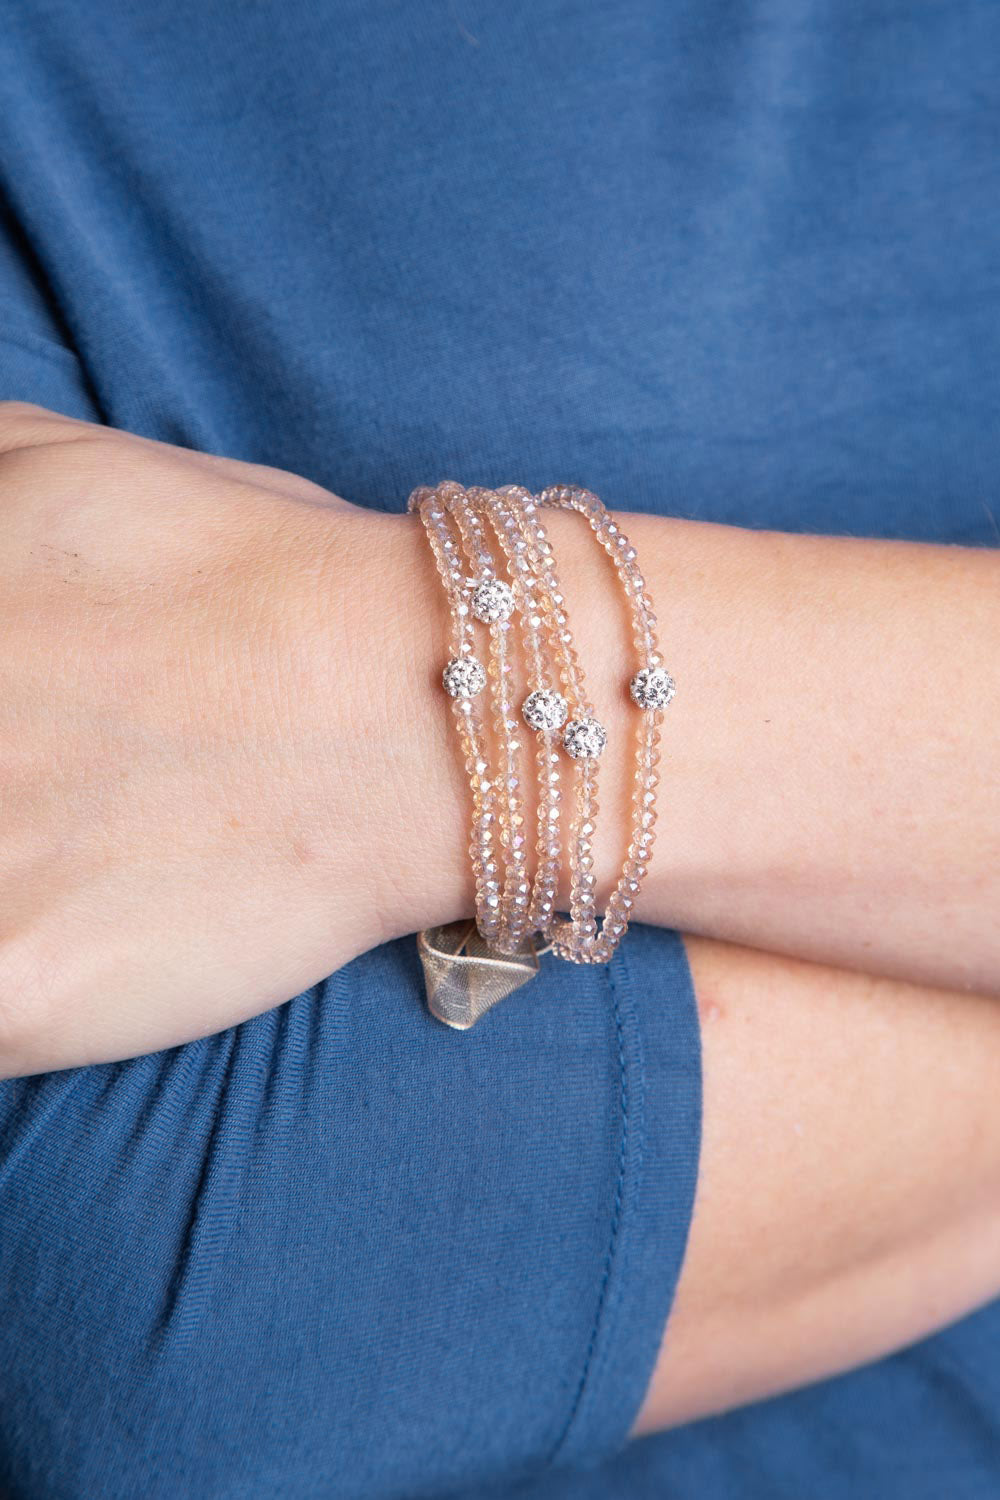 Type 2 Crystalline Dreams Bracelet